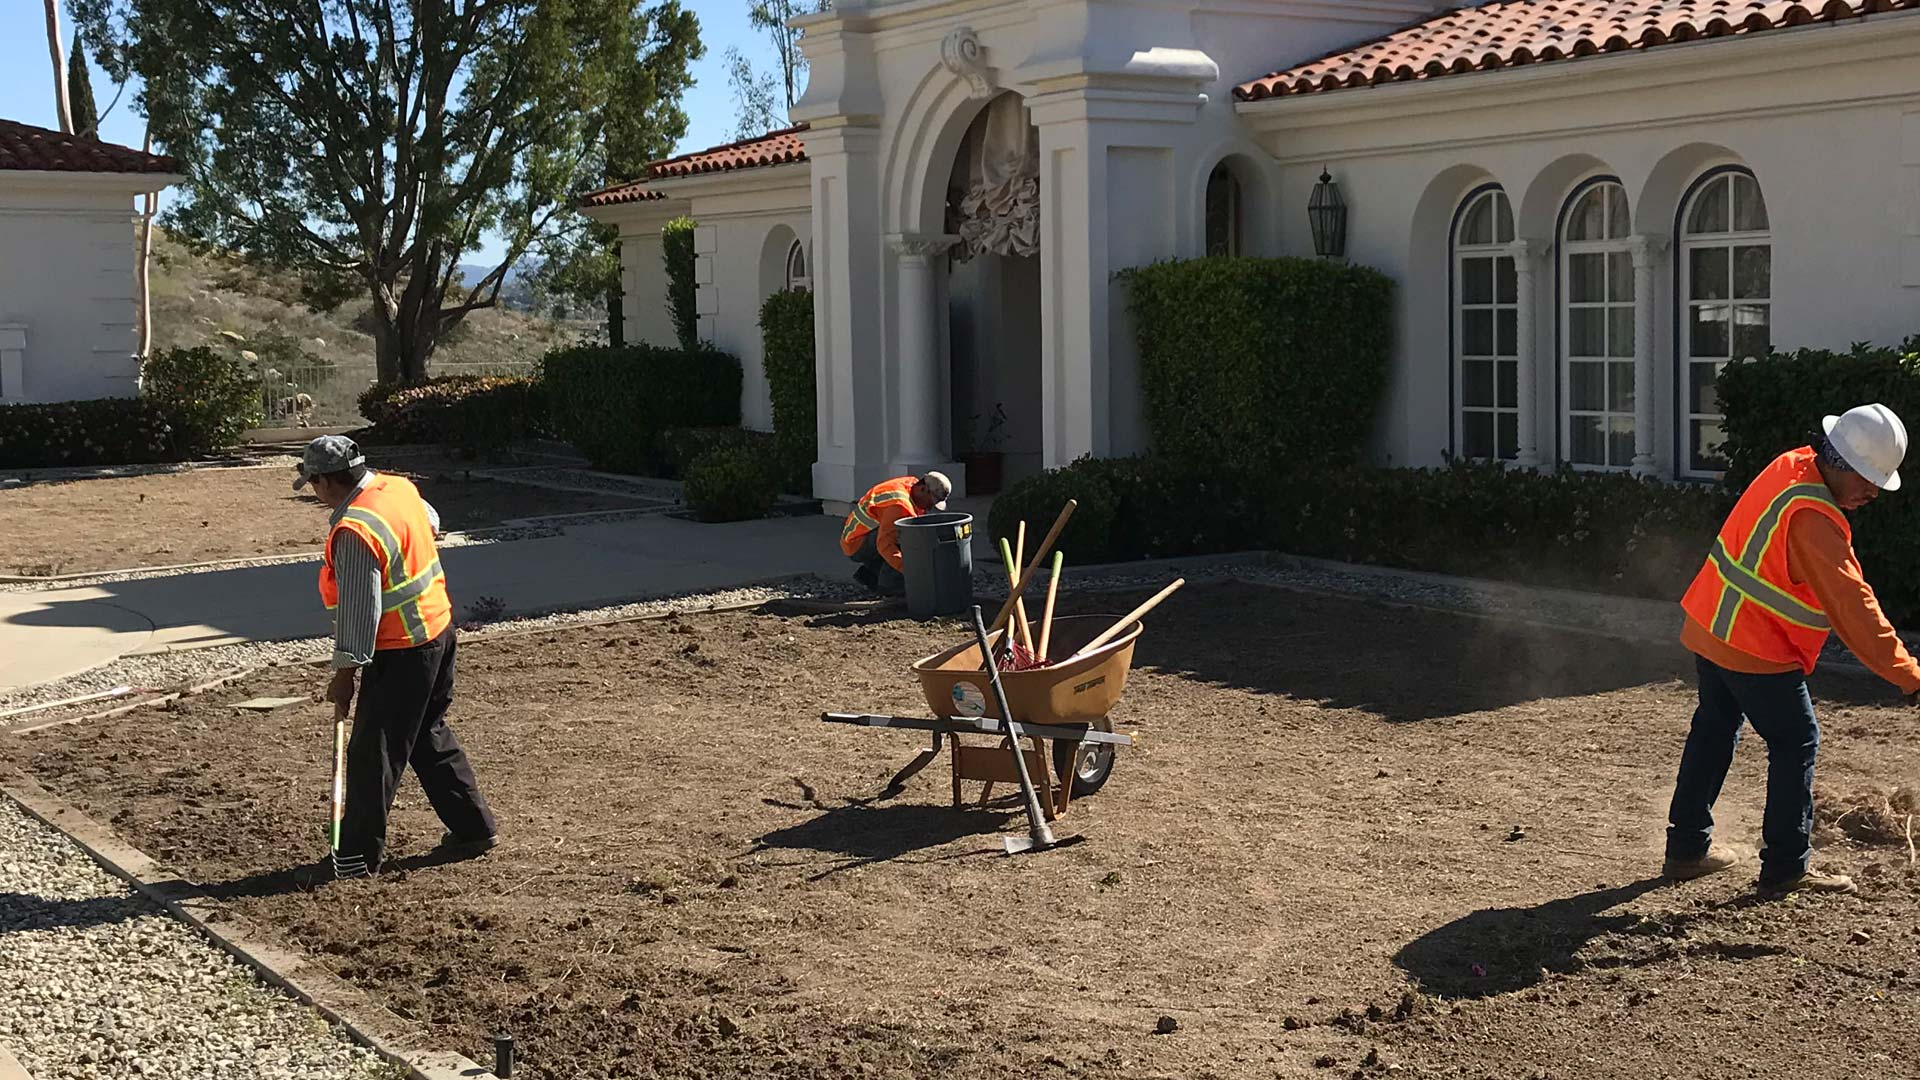 Crew working on a landscaping job in Carlsbad, CA.